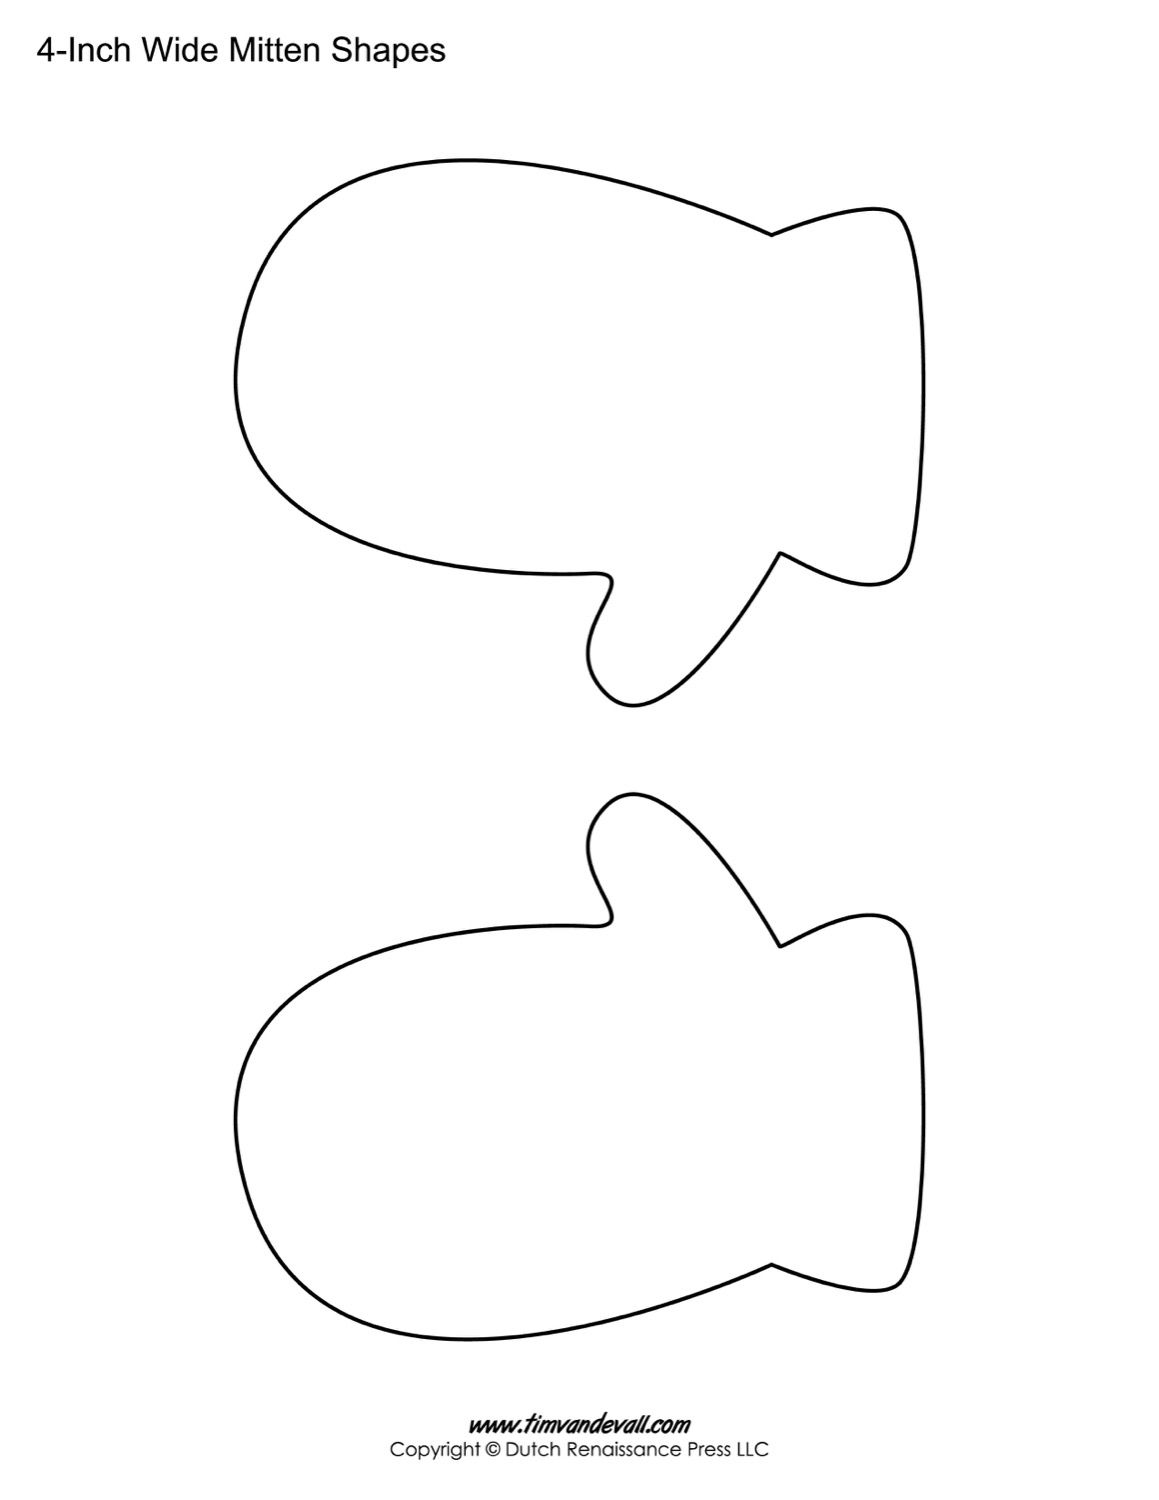 Printable mitten templates blank. Mittens clipart traceable